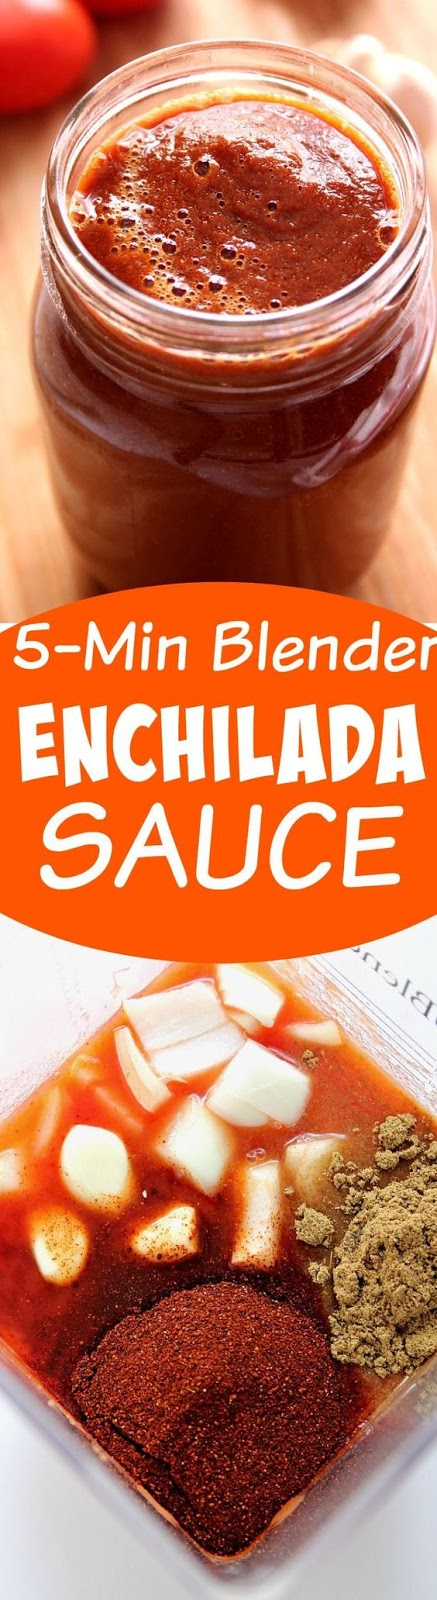 5-Minute Blender Enchilada Sauce Recipe